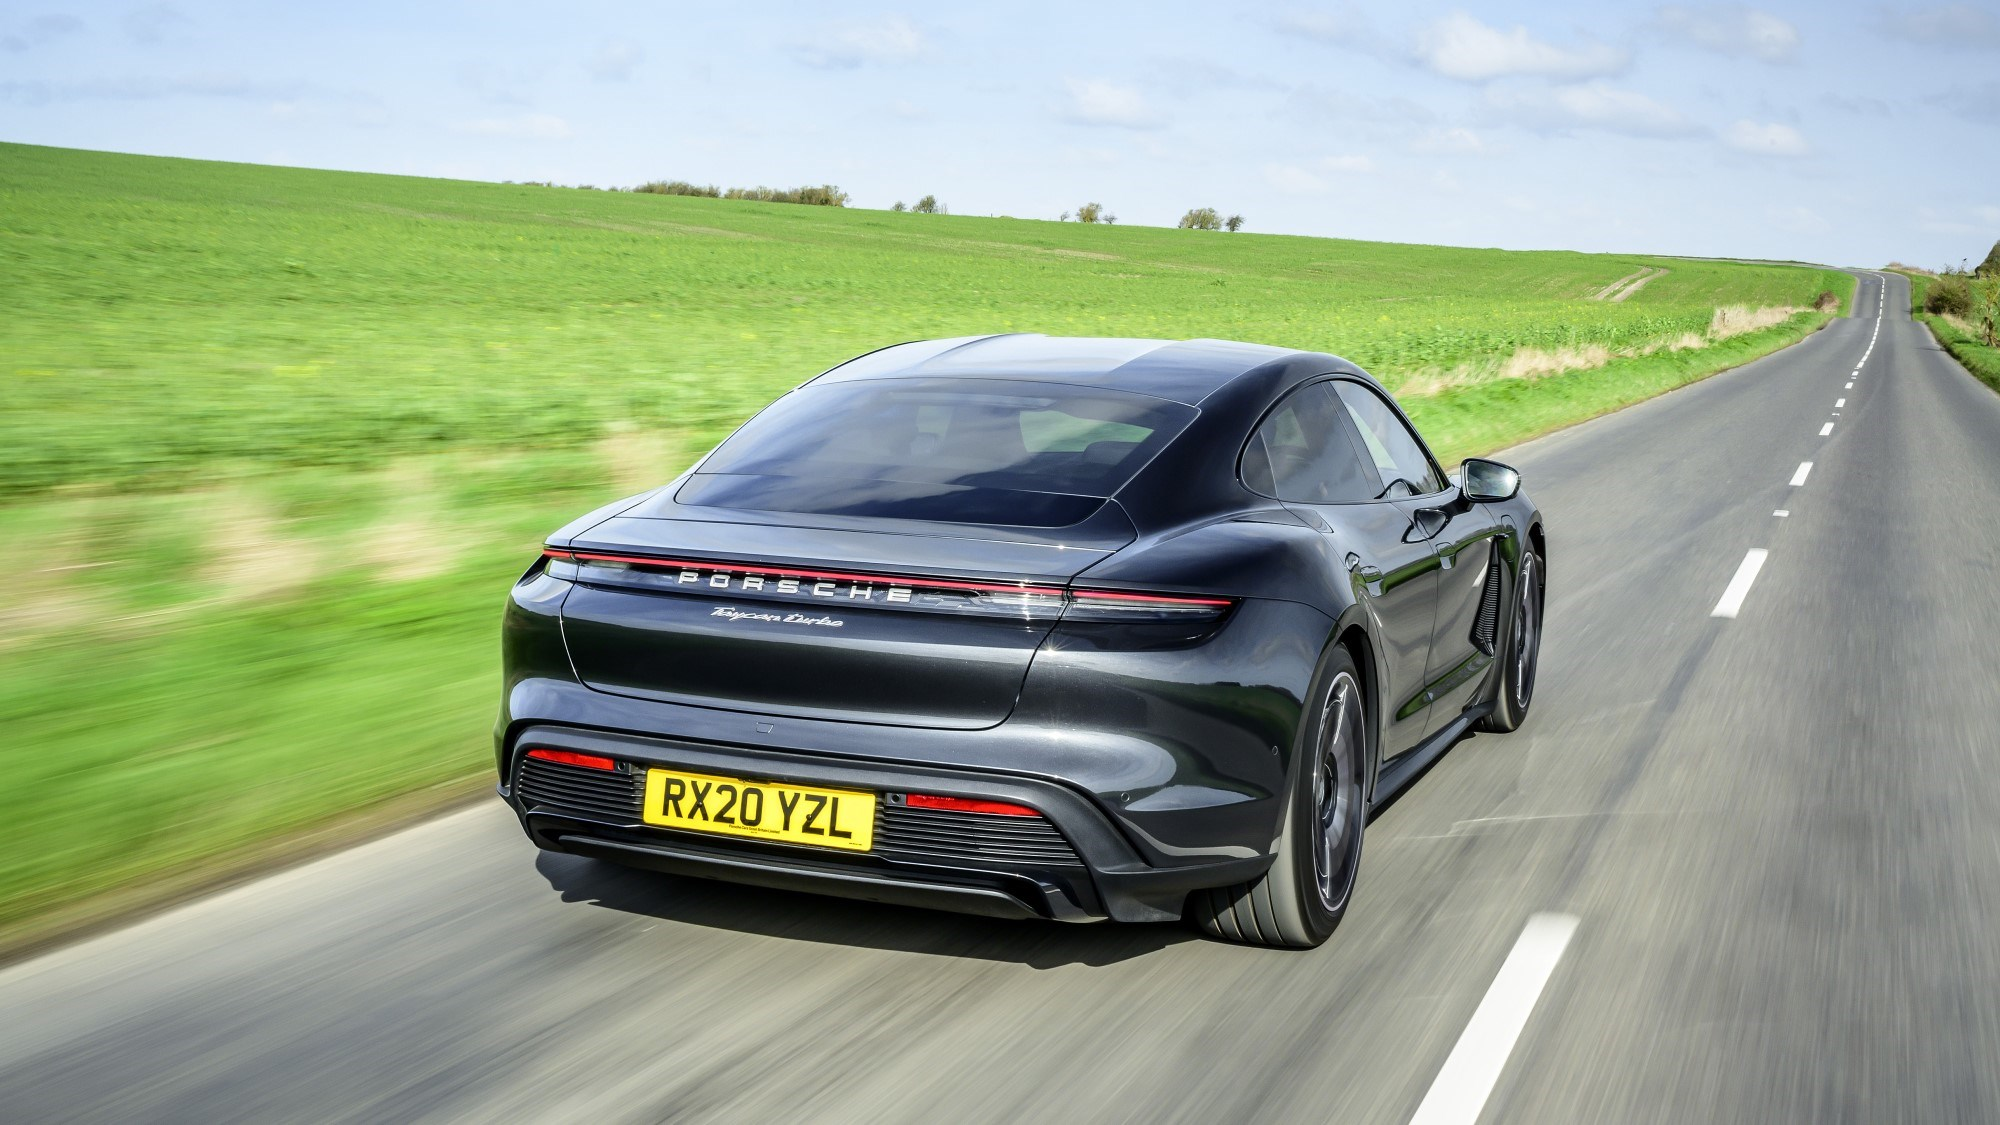 2021 Porsche Taycan rear three quarter